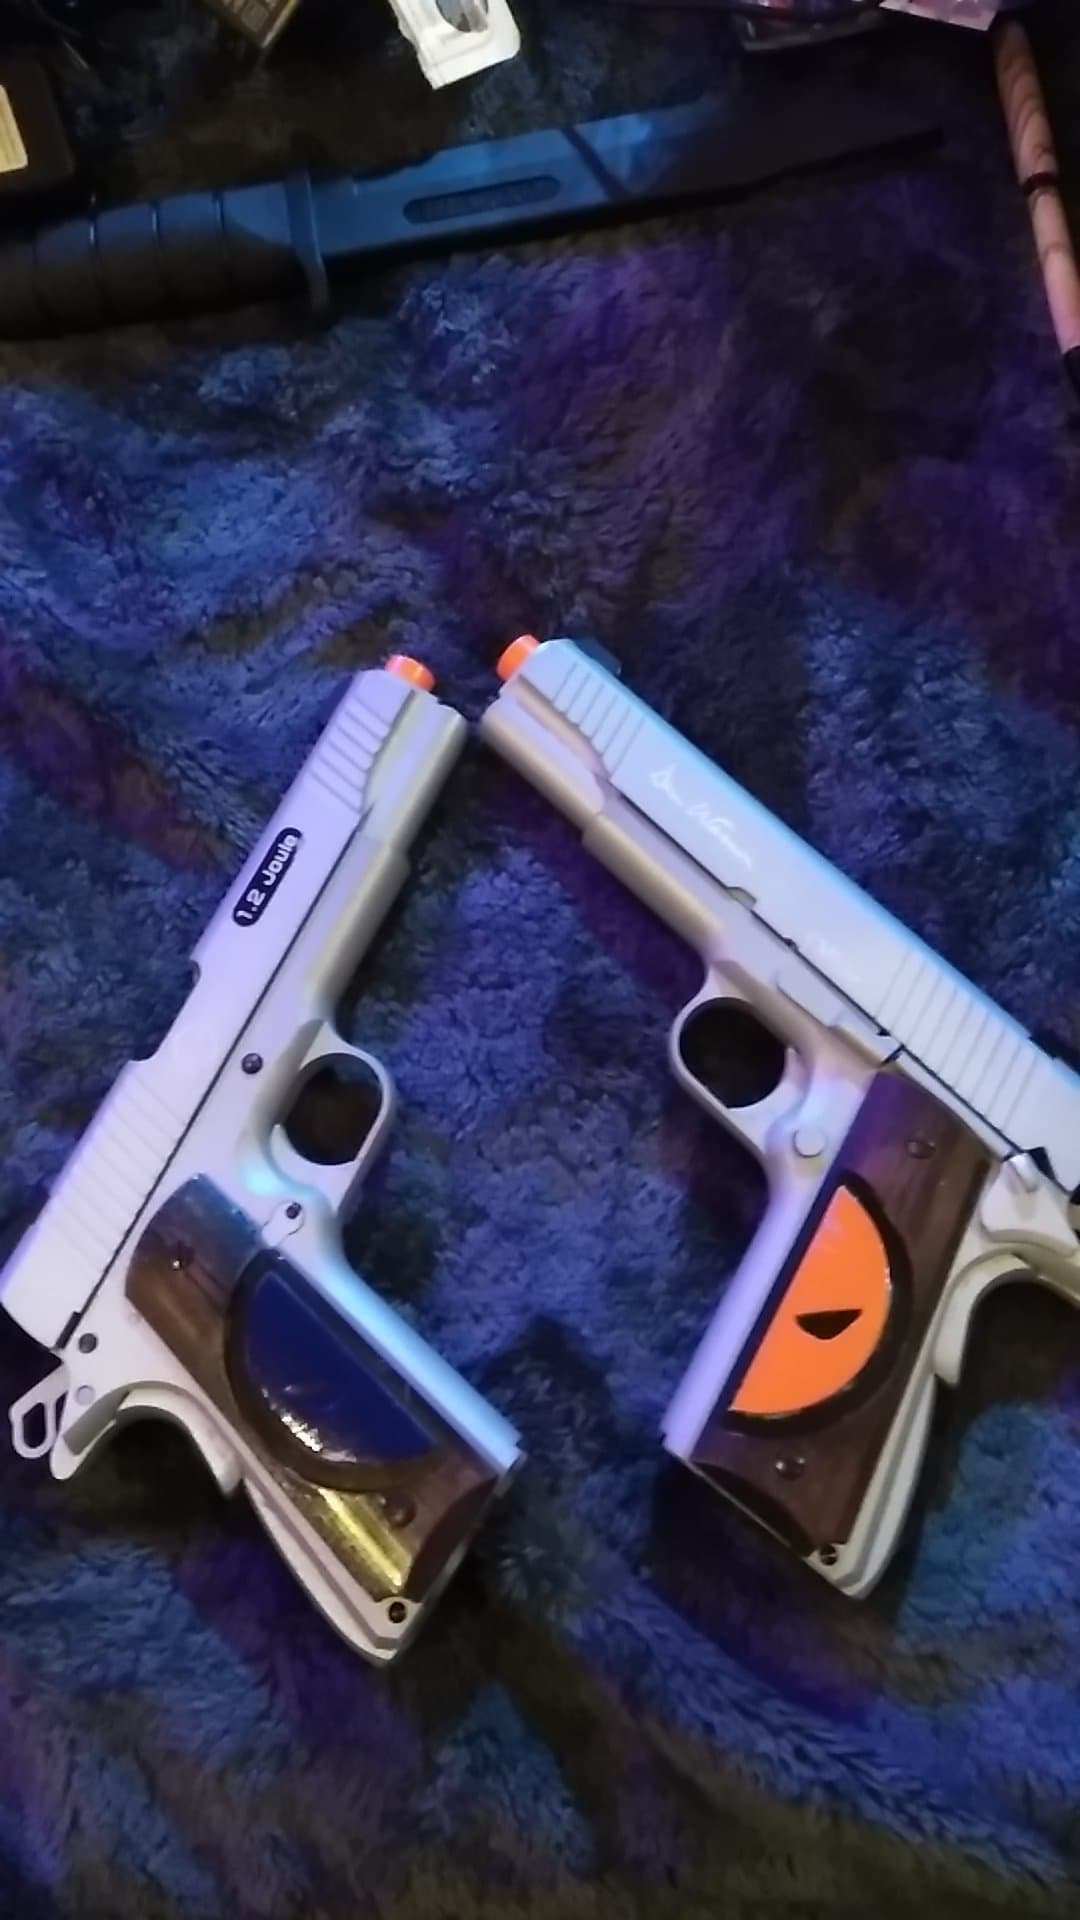 What are the best CQB airsoft guns? - Quora